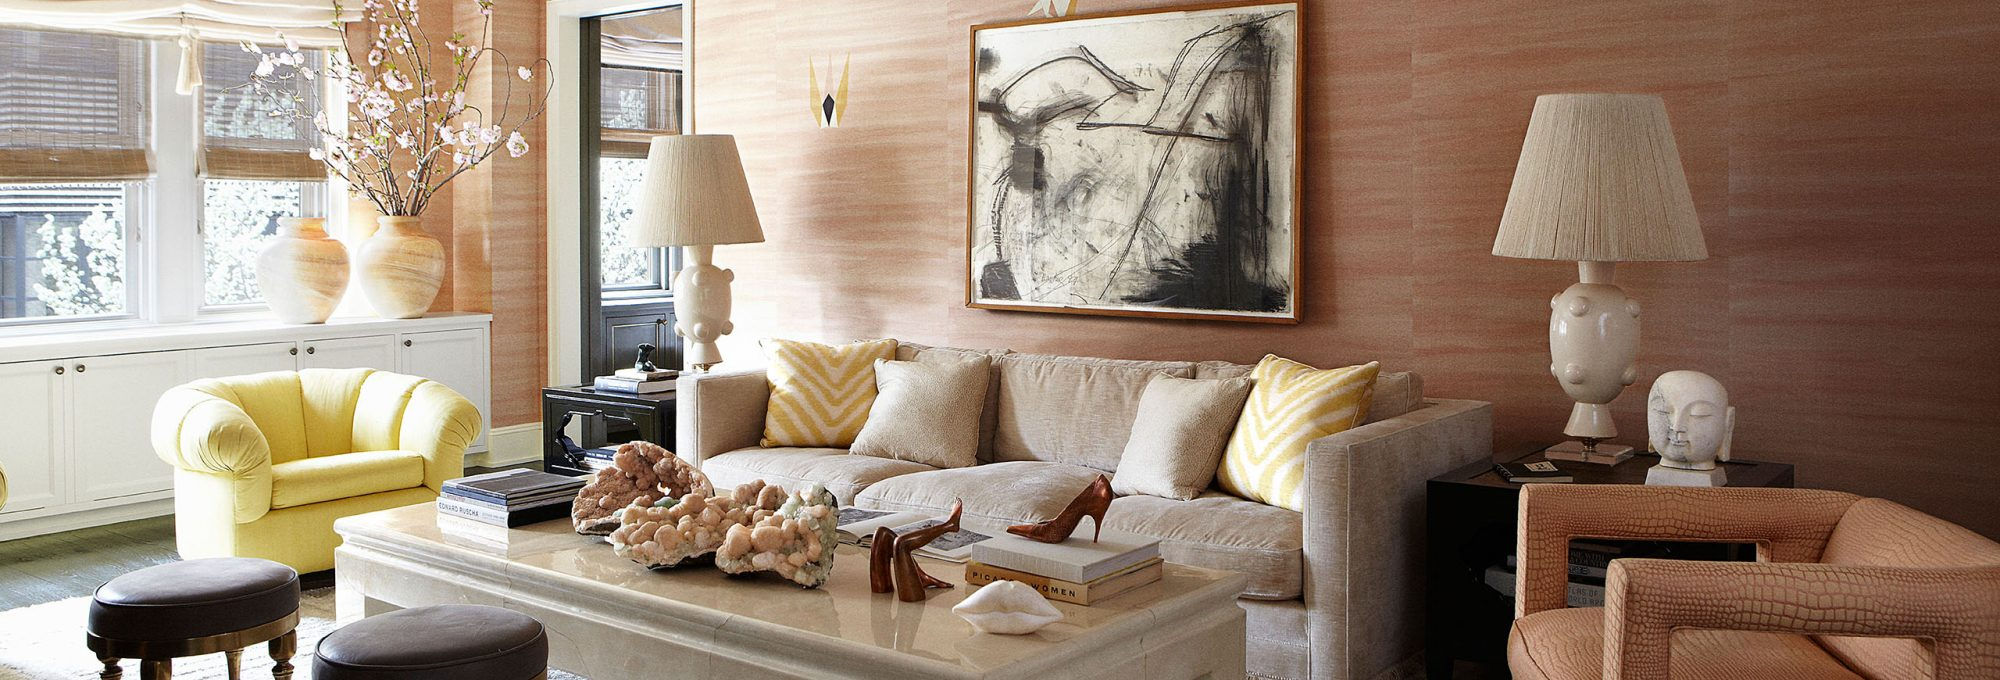 WORLD'S BEST INTERIOR DESIGNERS: THE 5 BEST KELLY WEARSTLER'S PROJECTS